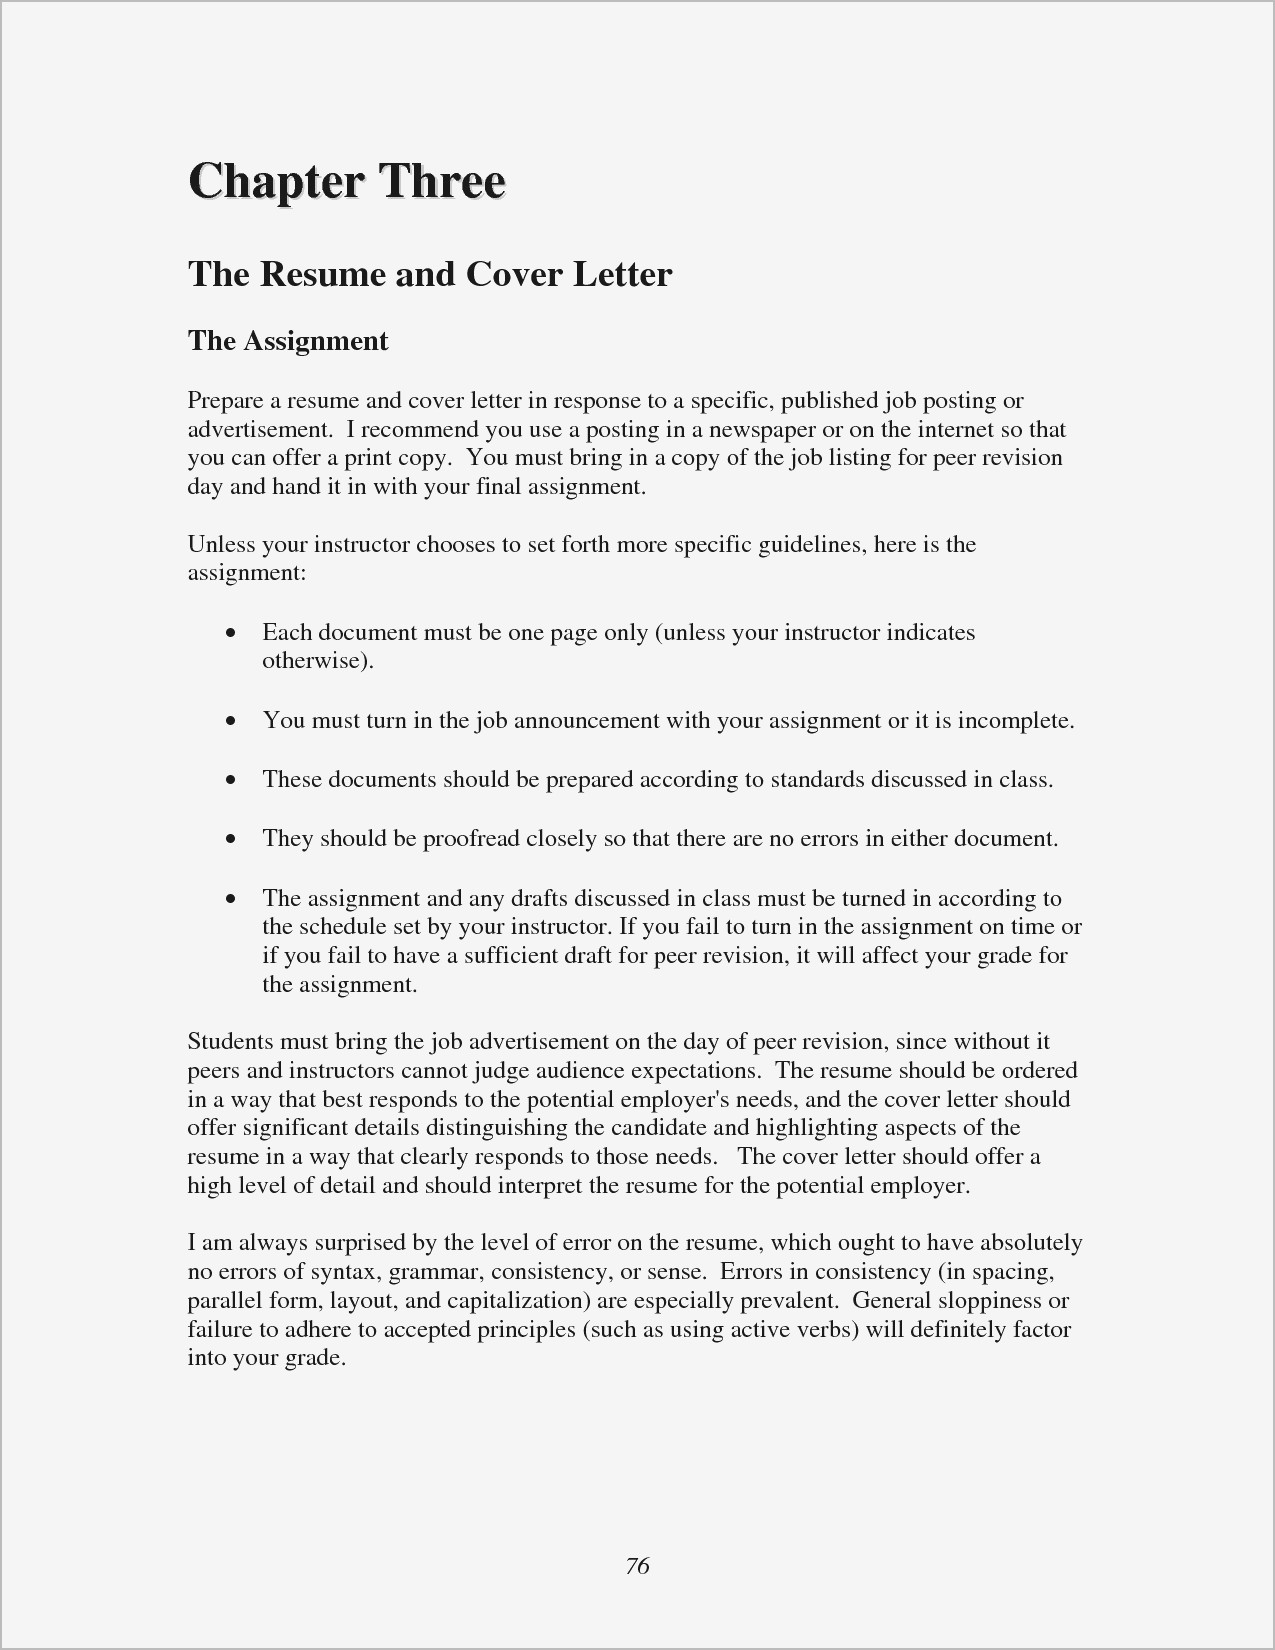 Cover Letter Template Pdf - Sample Cover Letter Template Pdf format